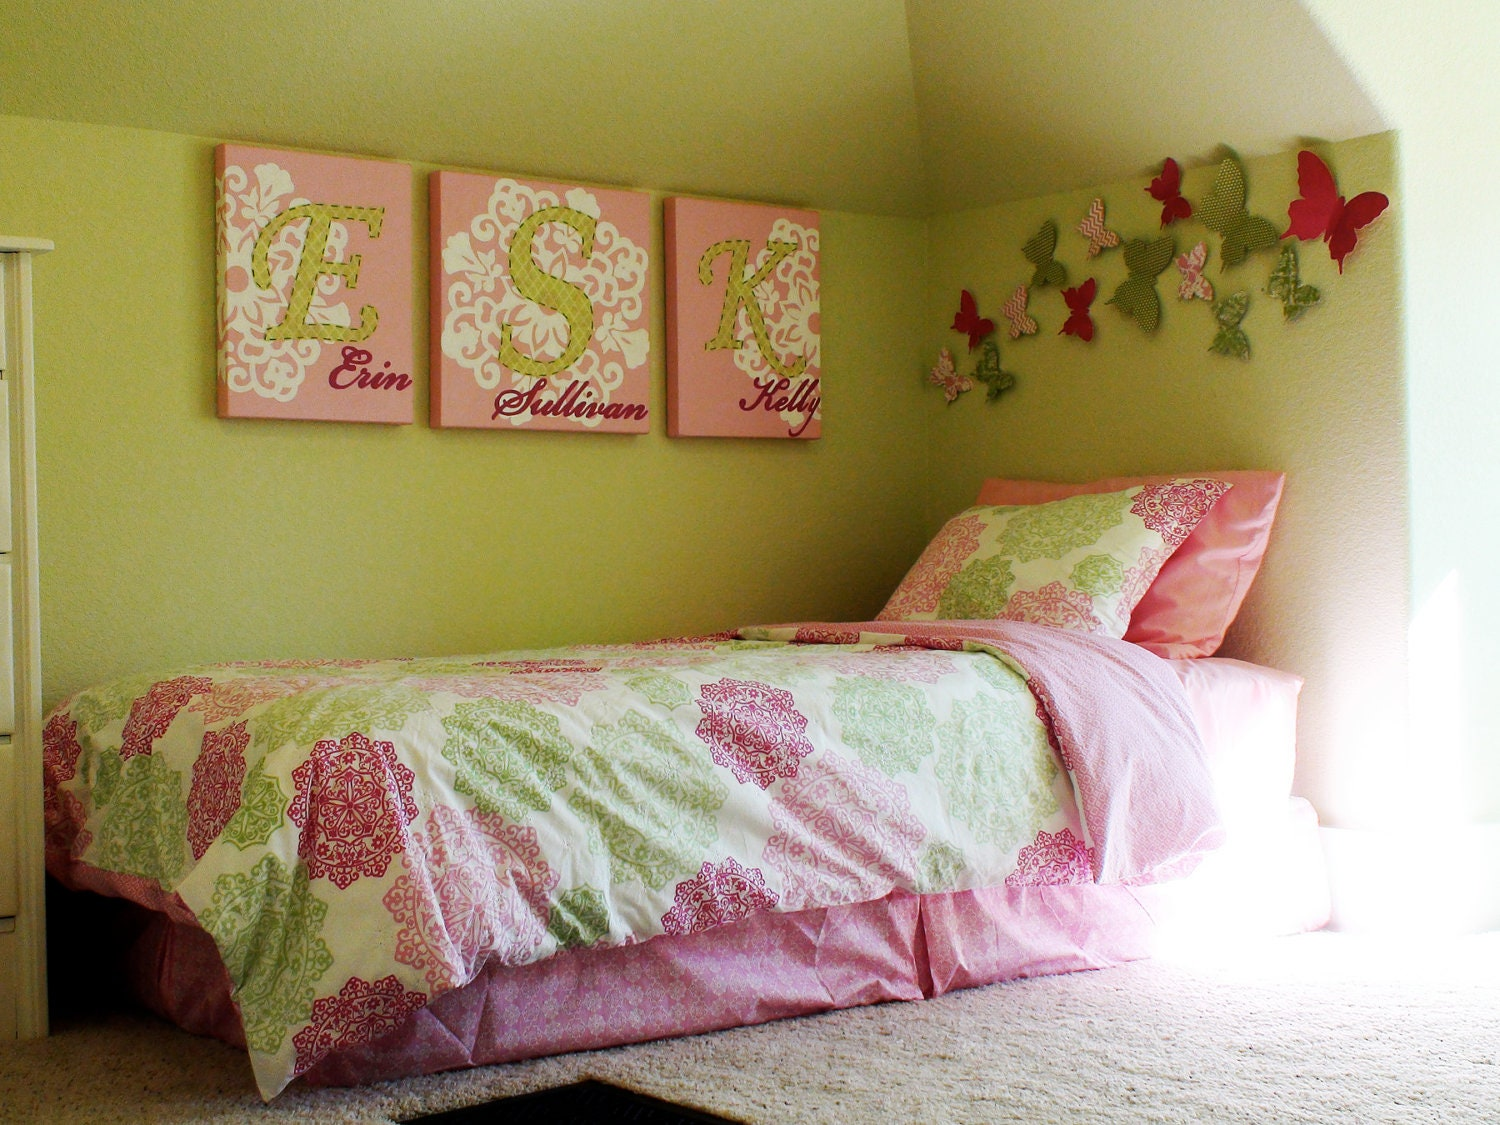 Canvas Children's Wall Art - 46 x 18 Total Size - Personalized Original Painting With Hand-Stitched Fabric